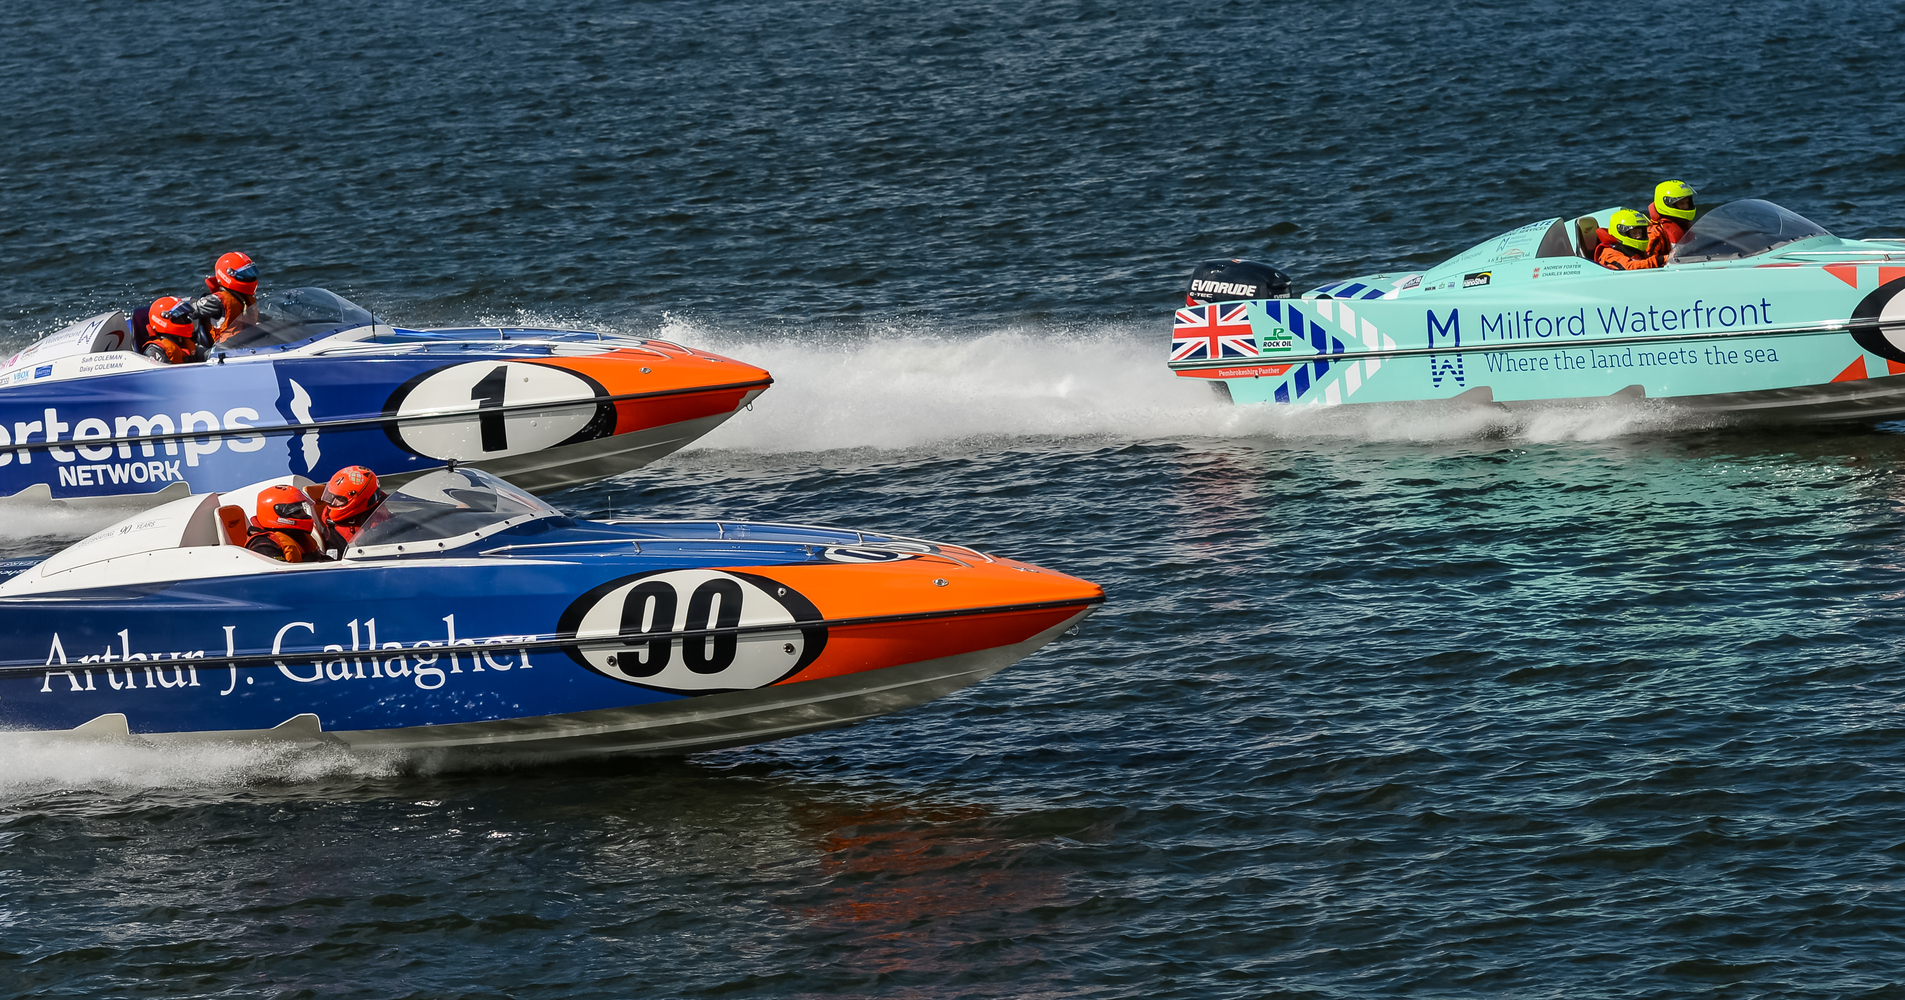 It was a fantastic day of racing as the new 2017 P1 SuperStock UK season got underway in fantastic sunshine on the Aalborg Waterfront